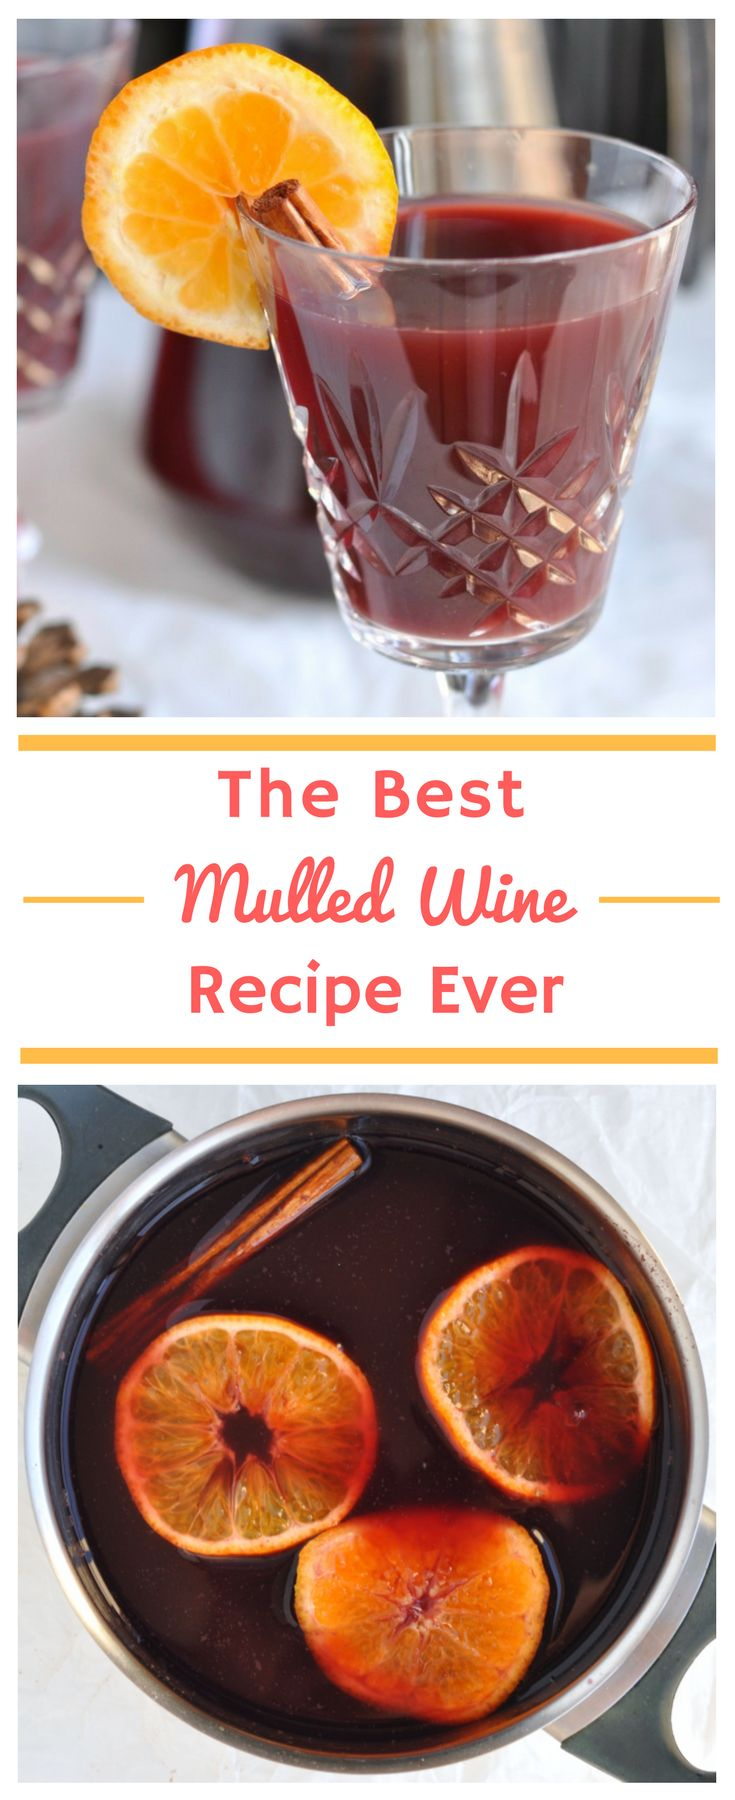 The Best Mulled Wine Recipe Ever | Click to learn my secret to making this simple mulled wine recipe taste amazing. Everyone will want to know how you make it! #Wine #MulledWine #Christmas #MerryChristmas #Drinks #Cocktails #ChristmasDrinks #ChristmasCocktails #ChristmasRecipes #Recipes #Recipe #MulledWineRecipe via @happyhealthymotivated